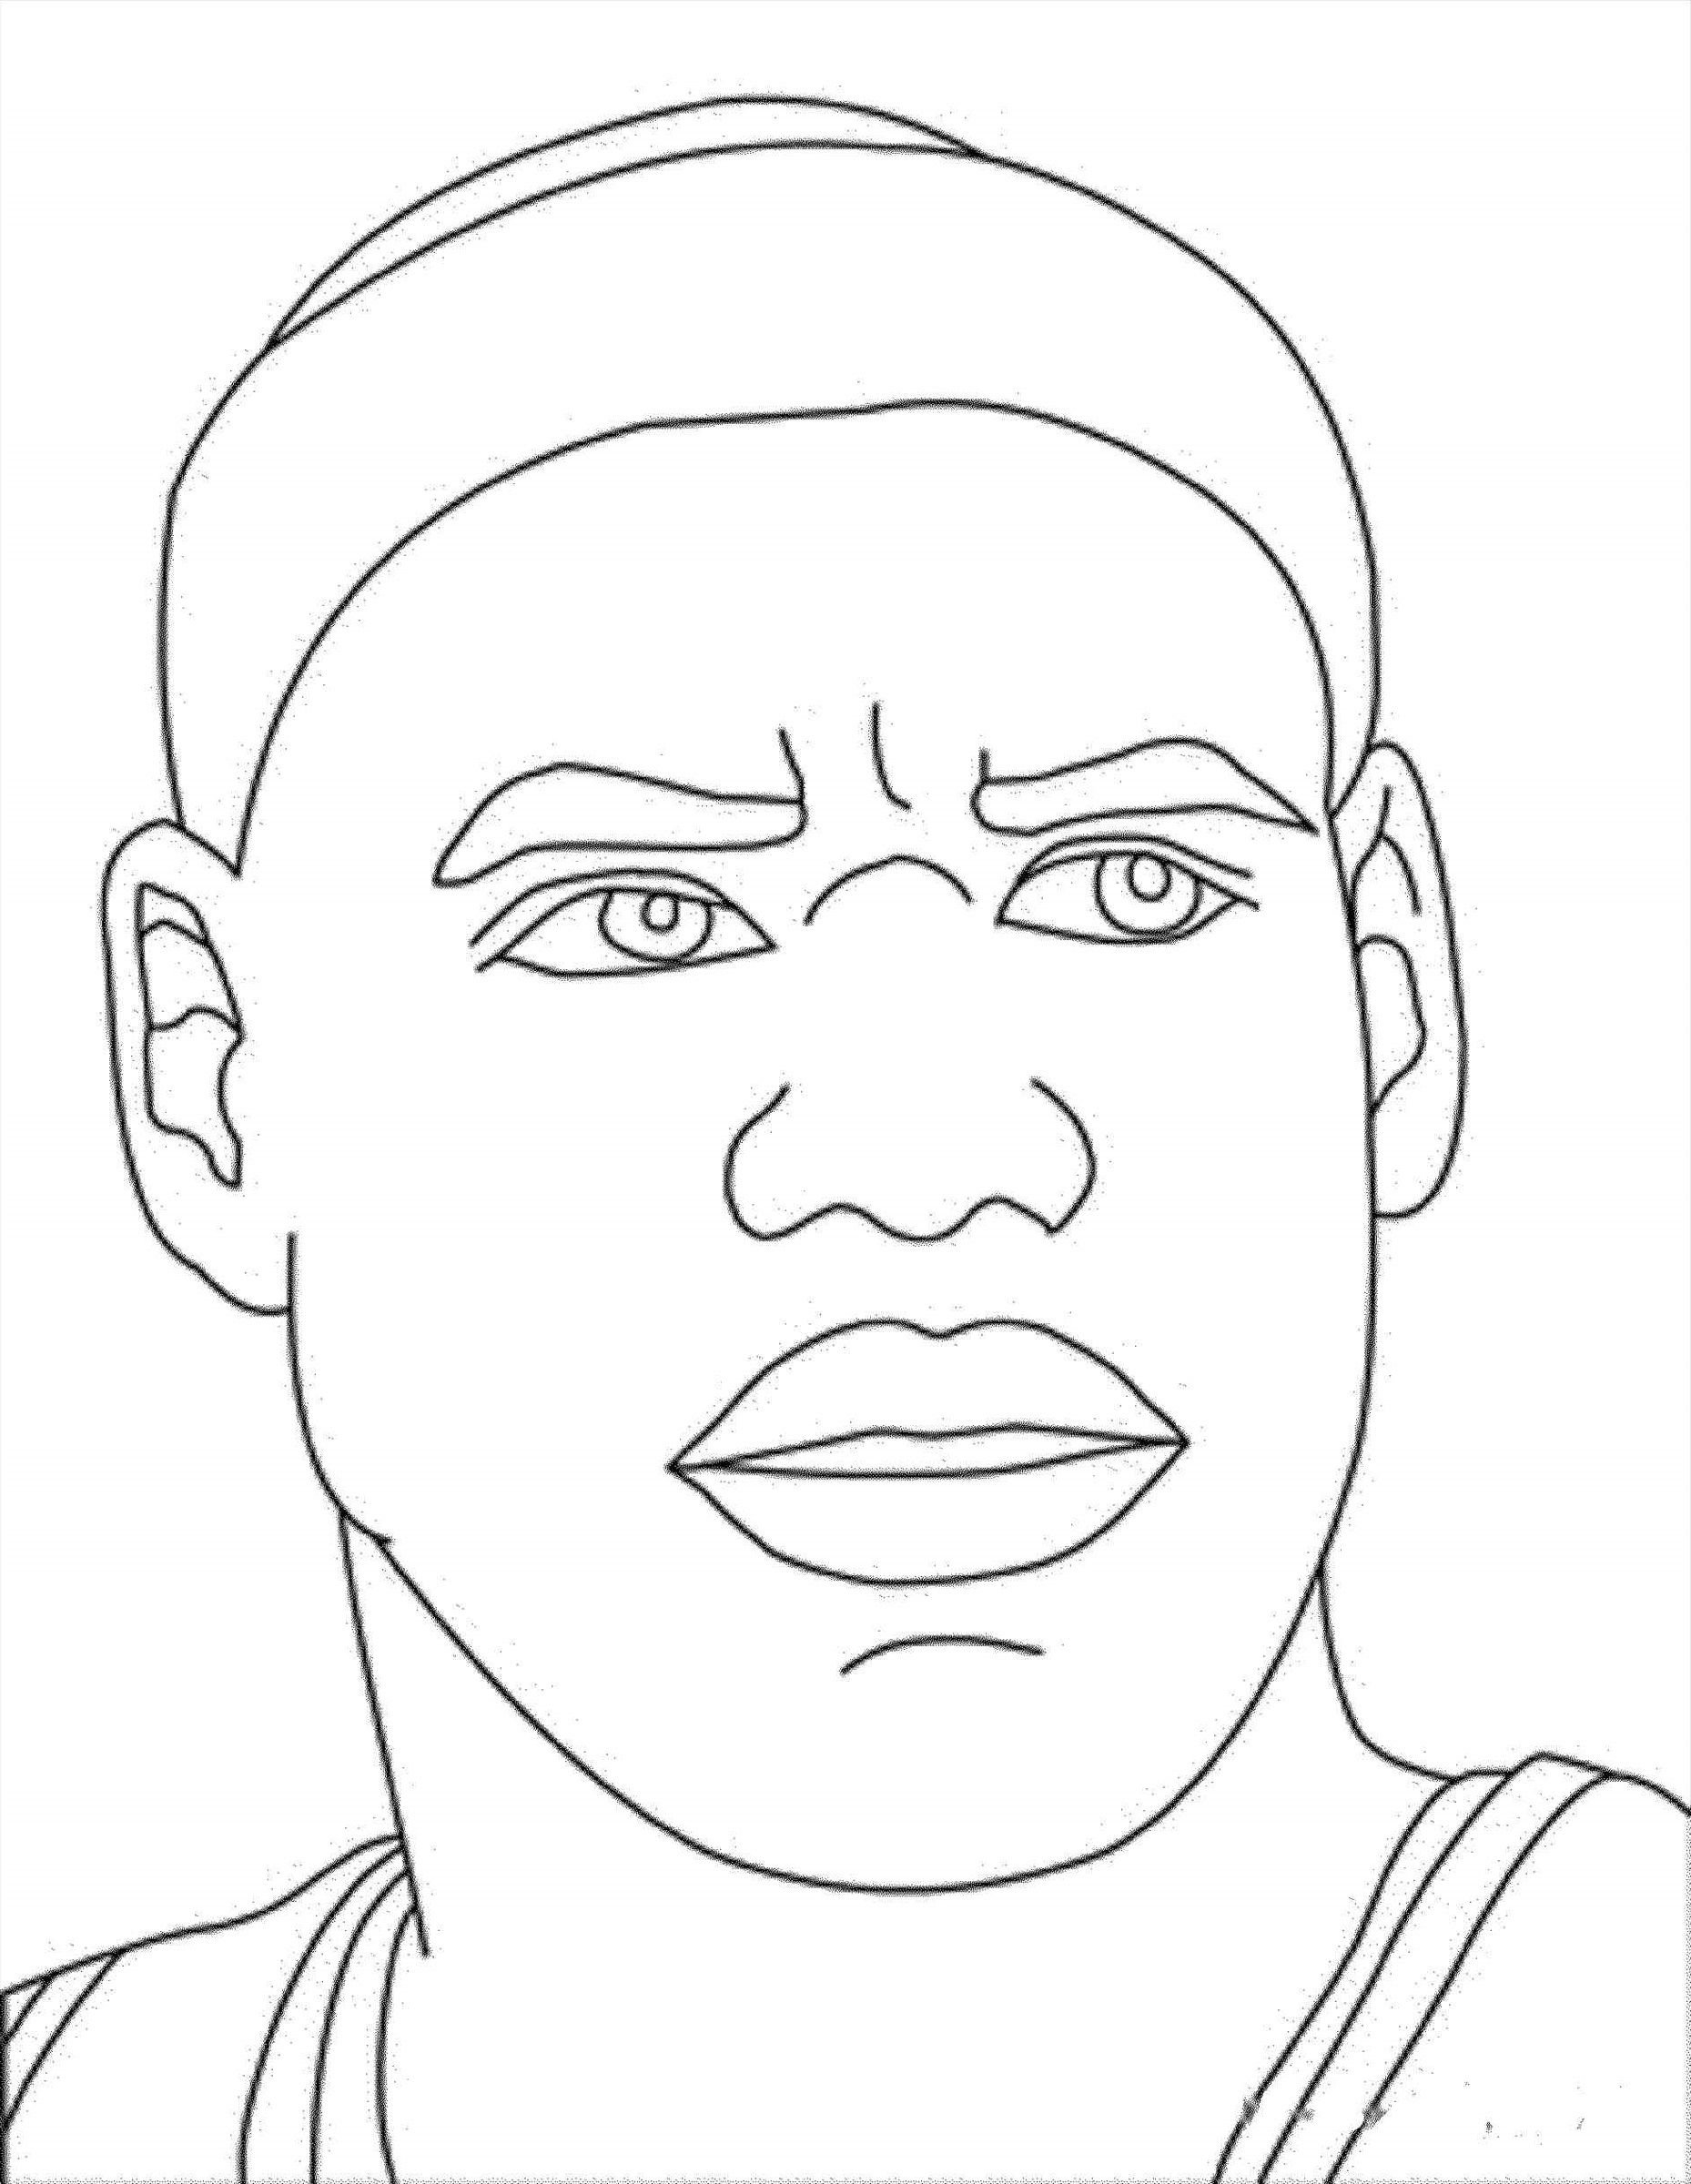 Stephen Curry Coloring Pages Basketball Sports Coloring Pages